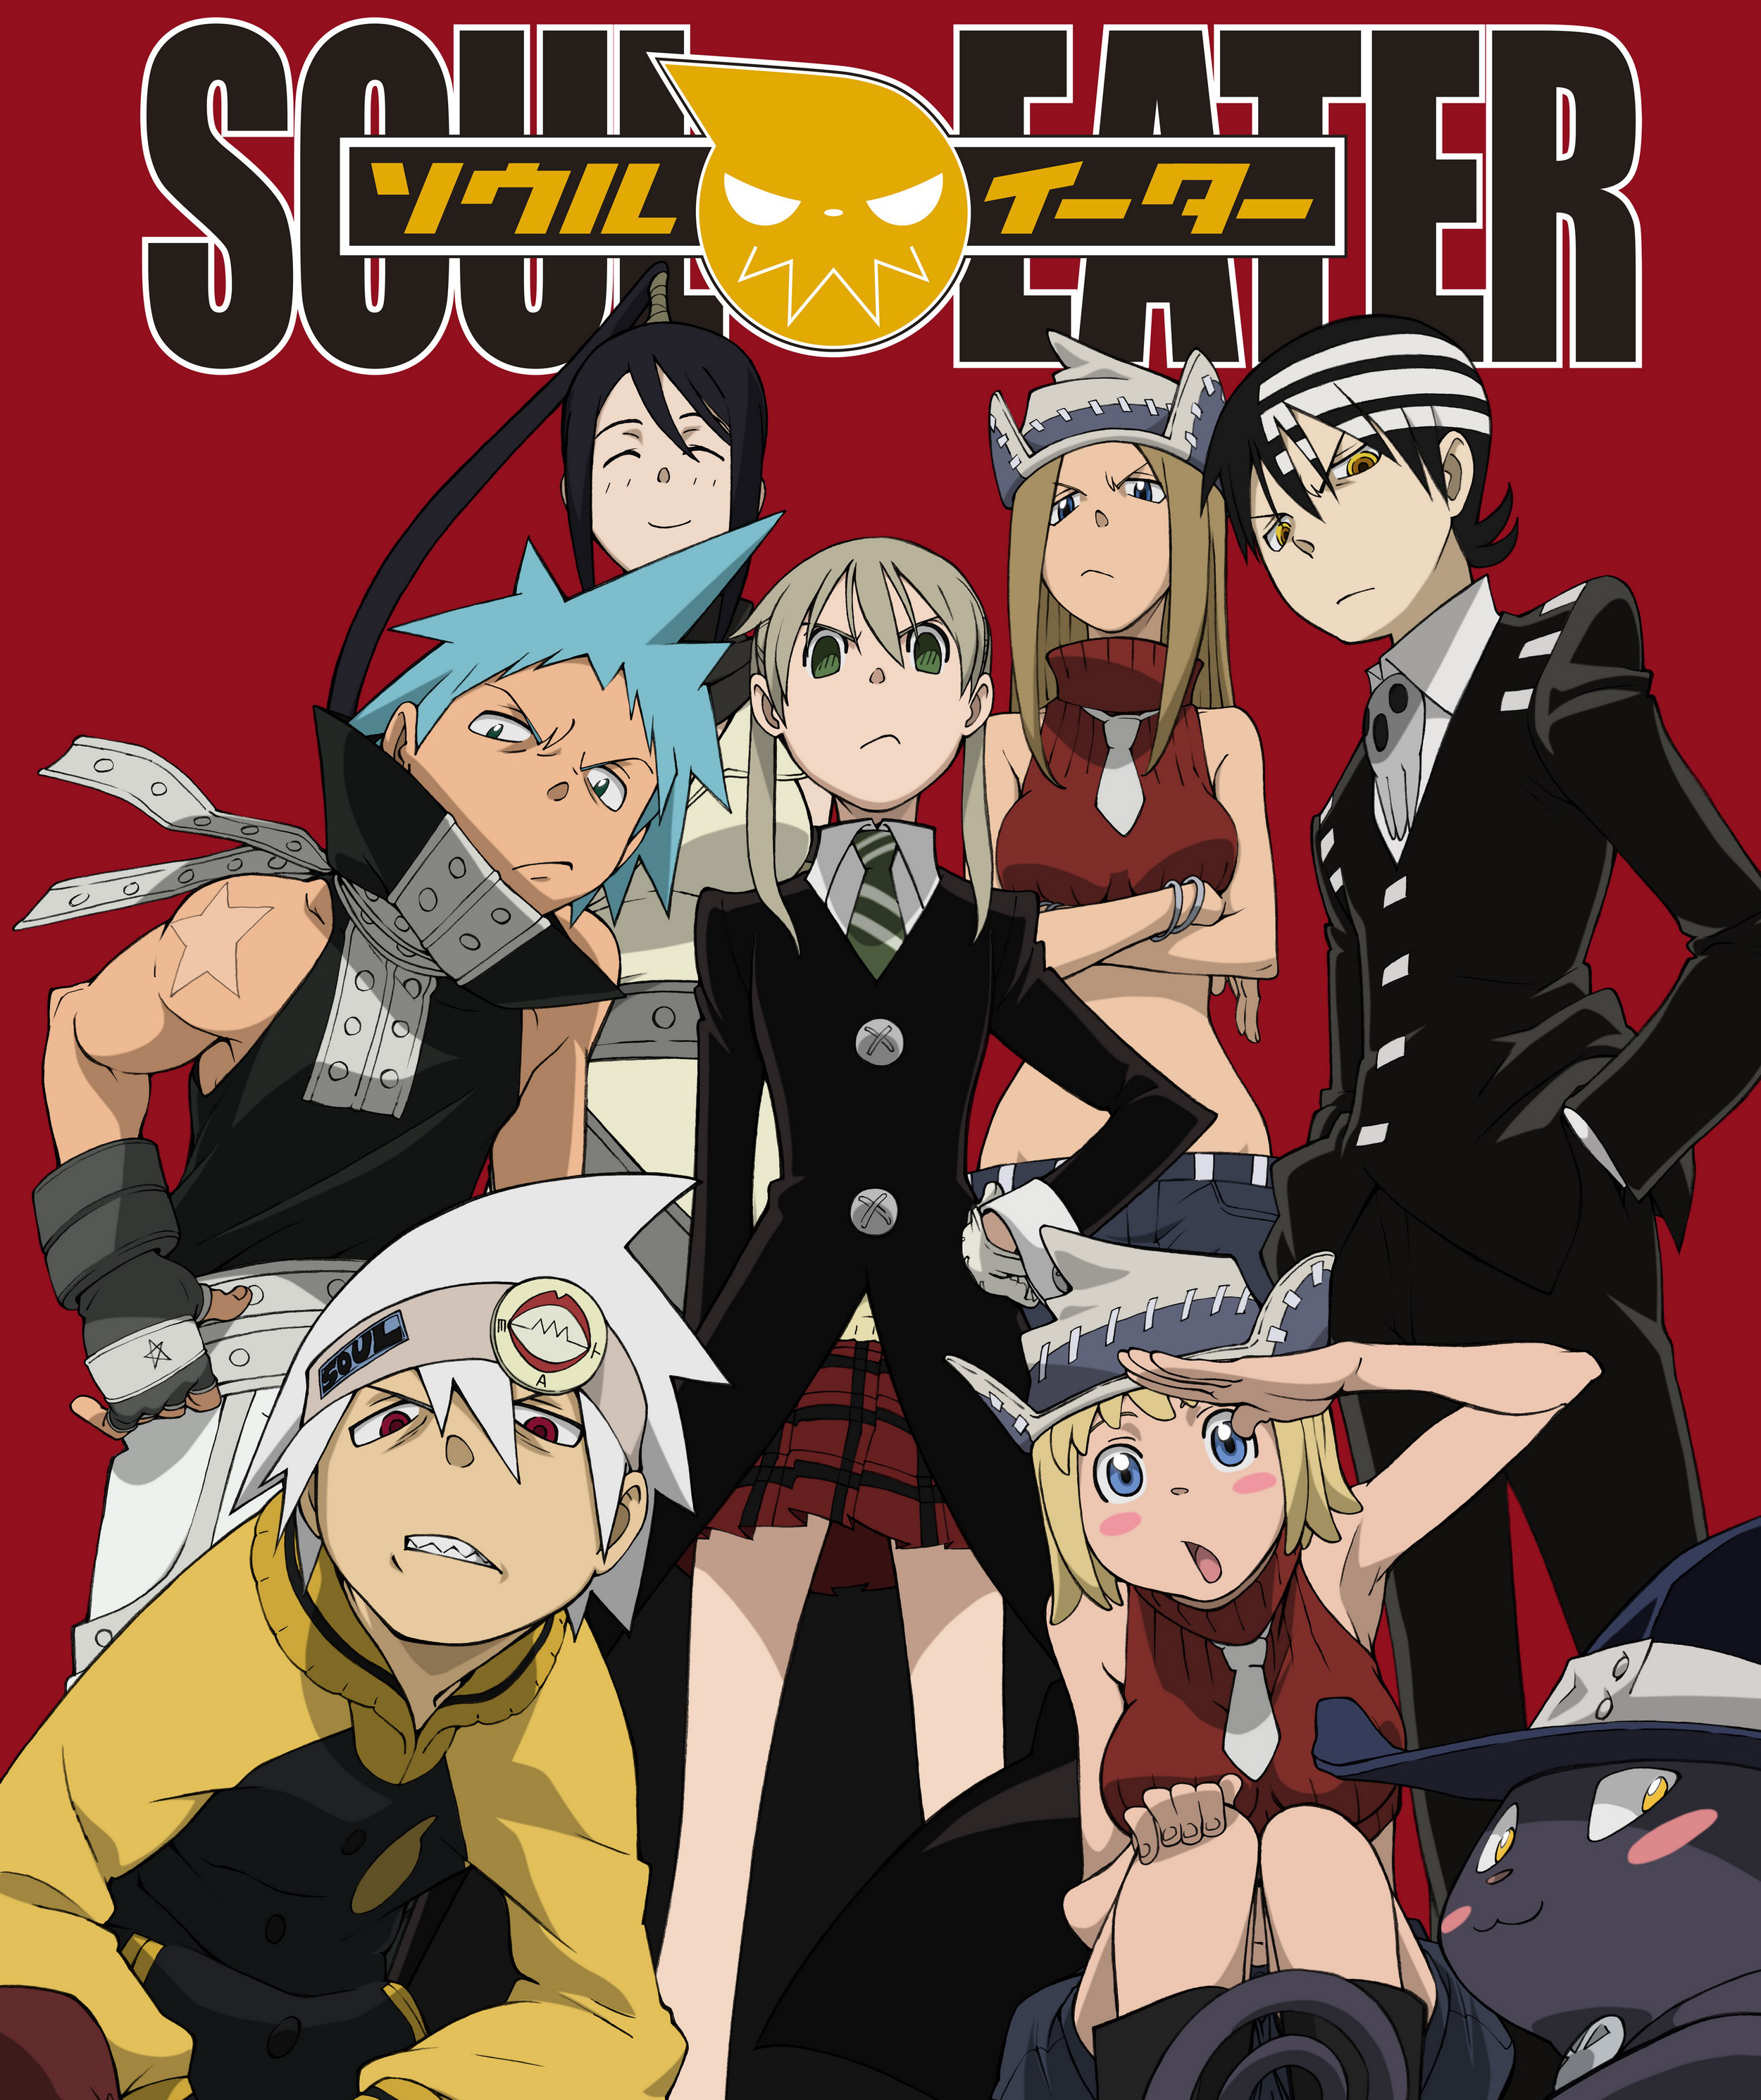 http://images.wikia.com/souleater/images/d/d4/SoulEater.jpg